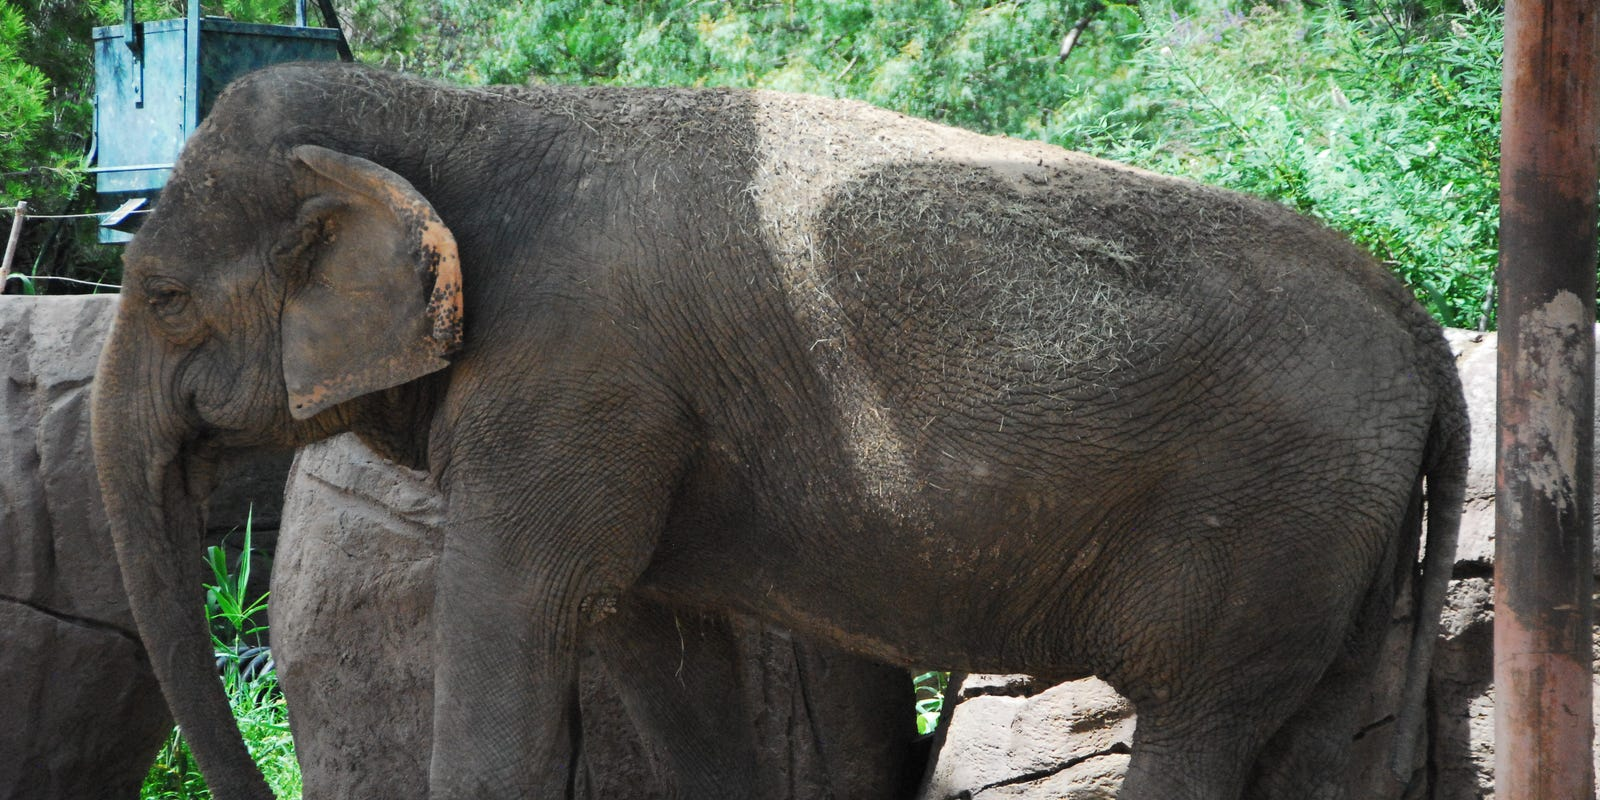 El Paso Zoo elephant Juno completes her fourth cancer treatment, doing well